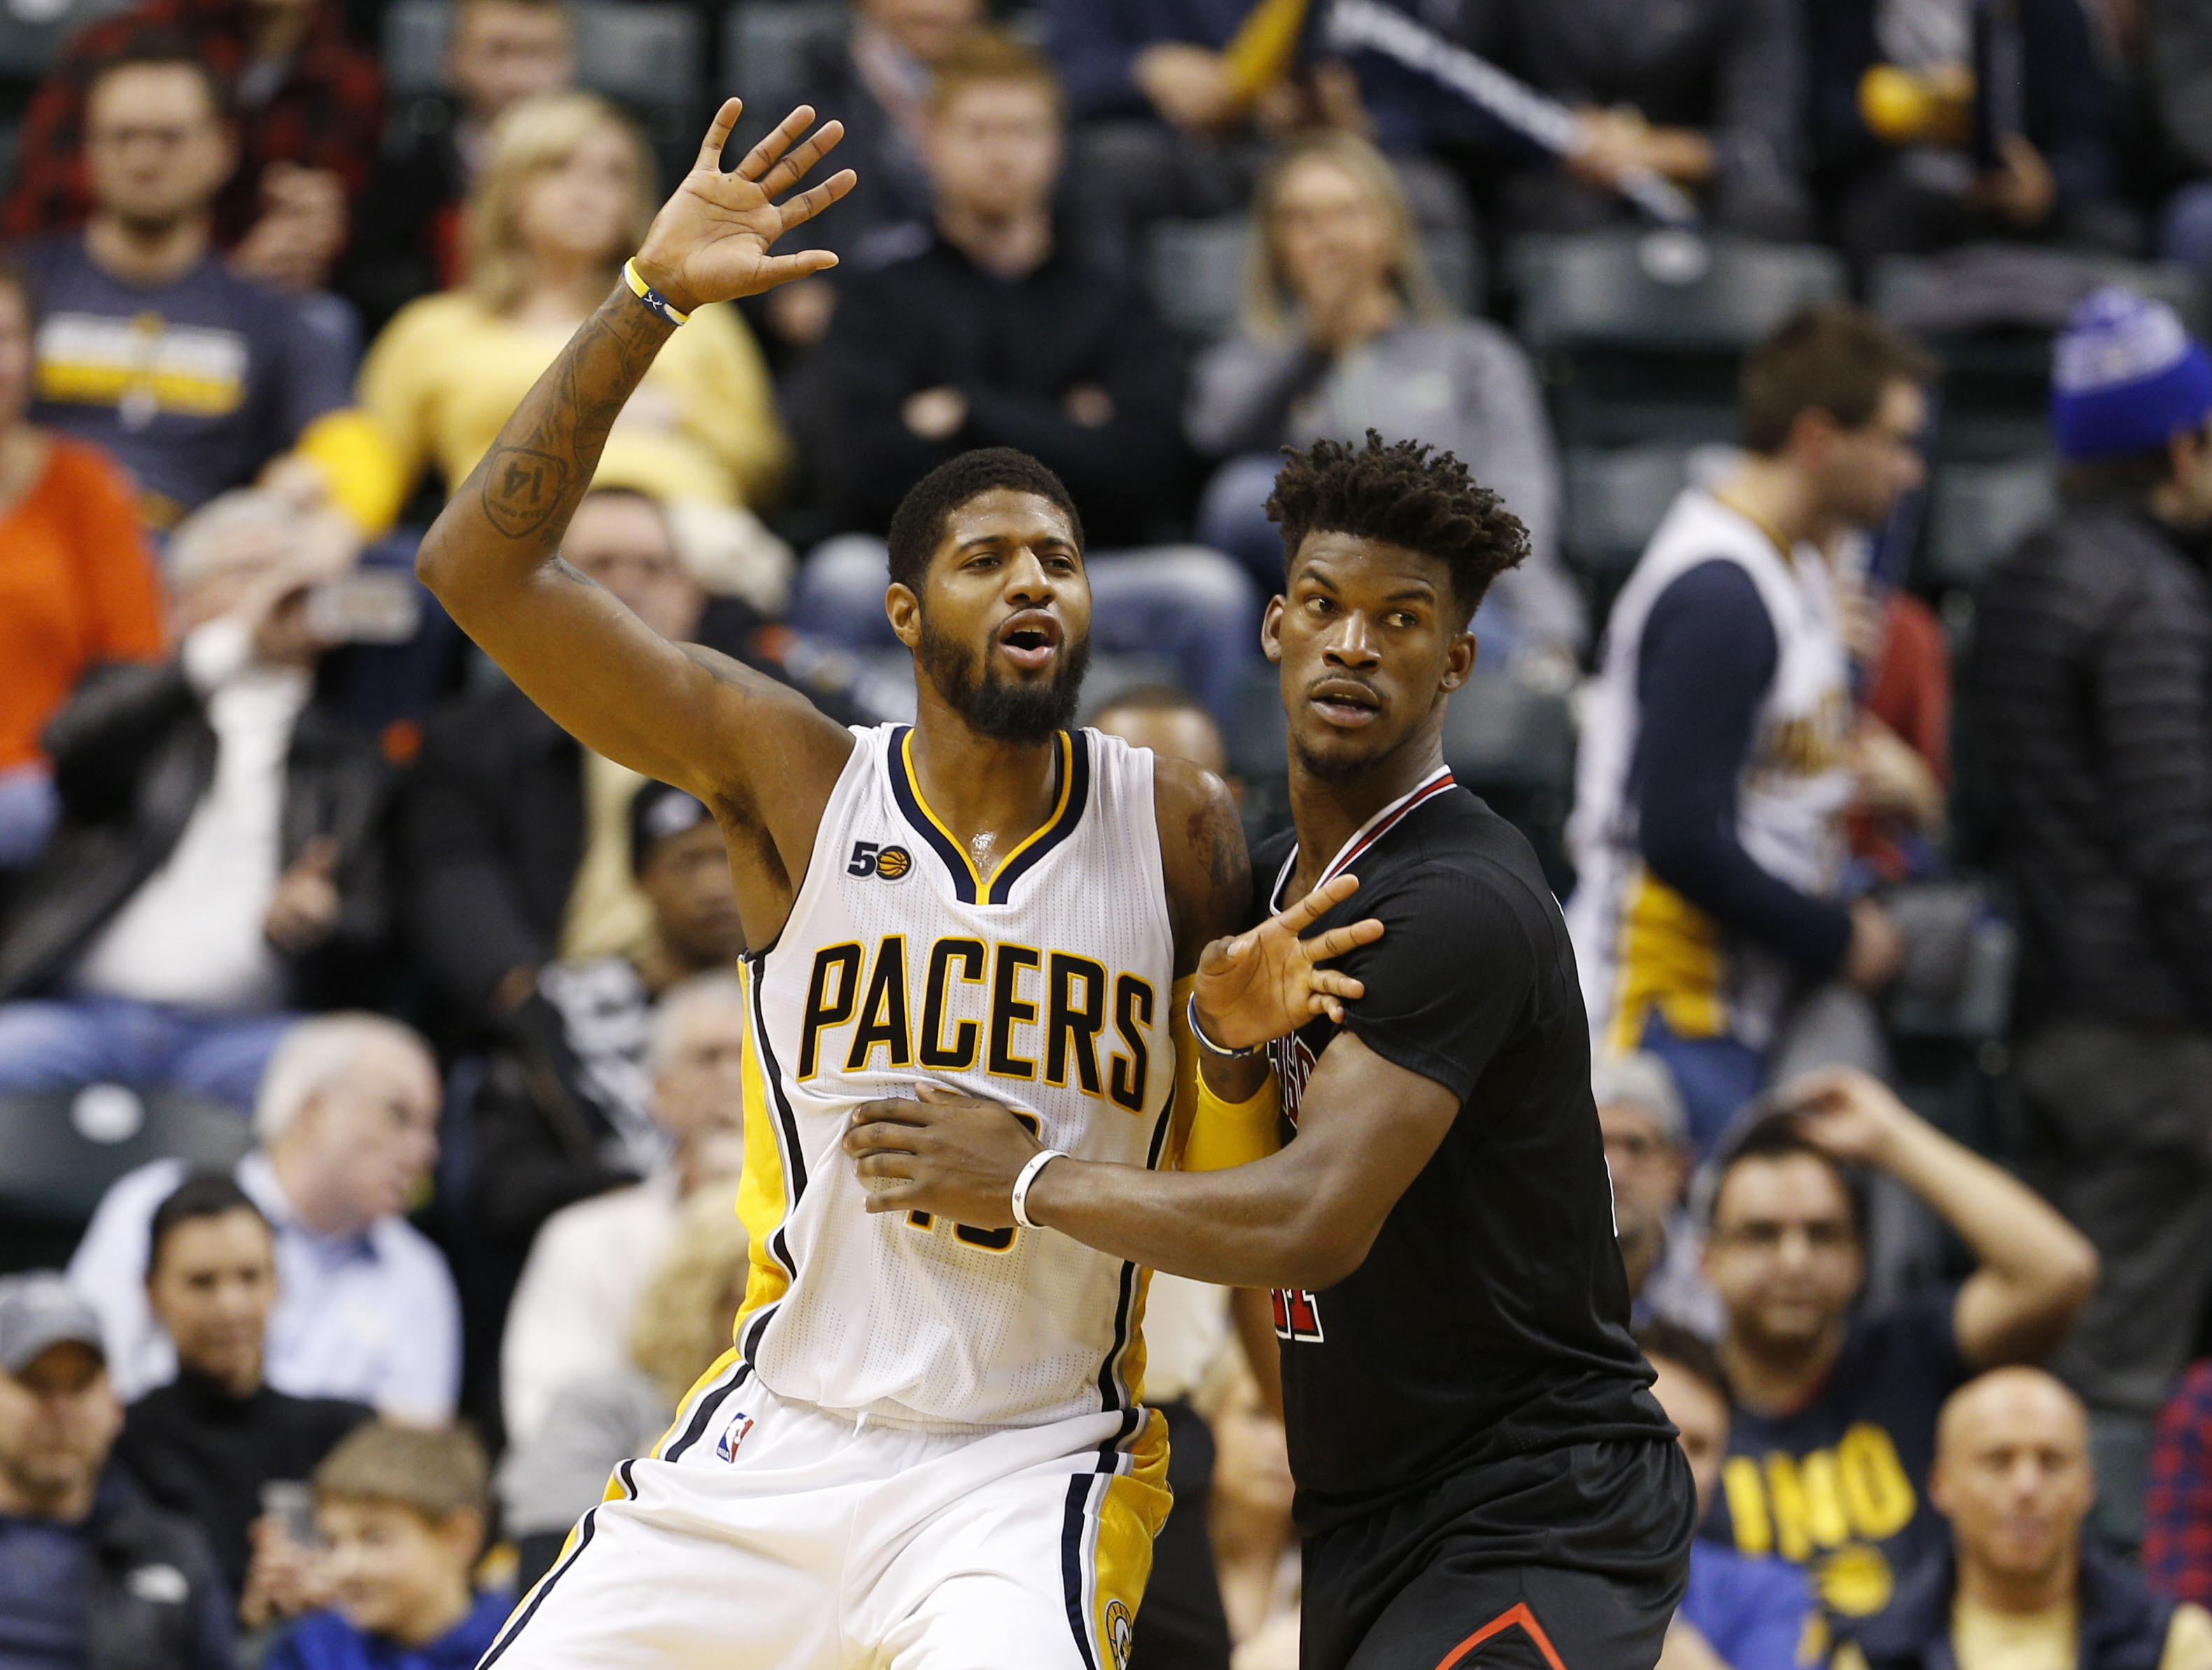 Dec 30, 2016; Indianapolis, IN, USA; Indiana Pacers forward Paul George (13) is guarded by Chicago Bulls guard Jimmy Butler (21) at Bankers Life Fieldhouse. Indiana defeated Chicago 111-101. Mandatory Credit: Brian Spurlock-USA TODAY Sports